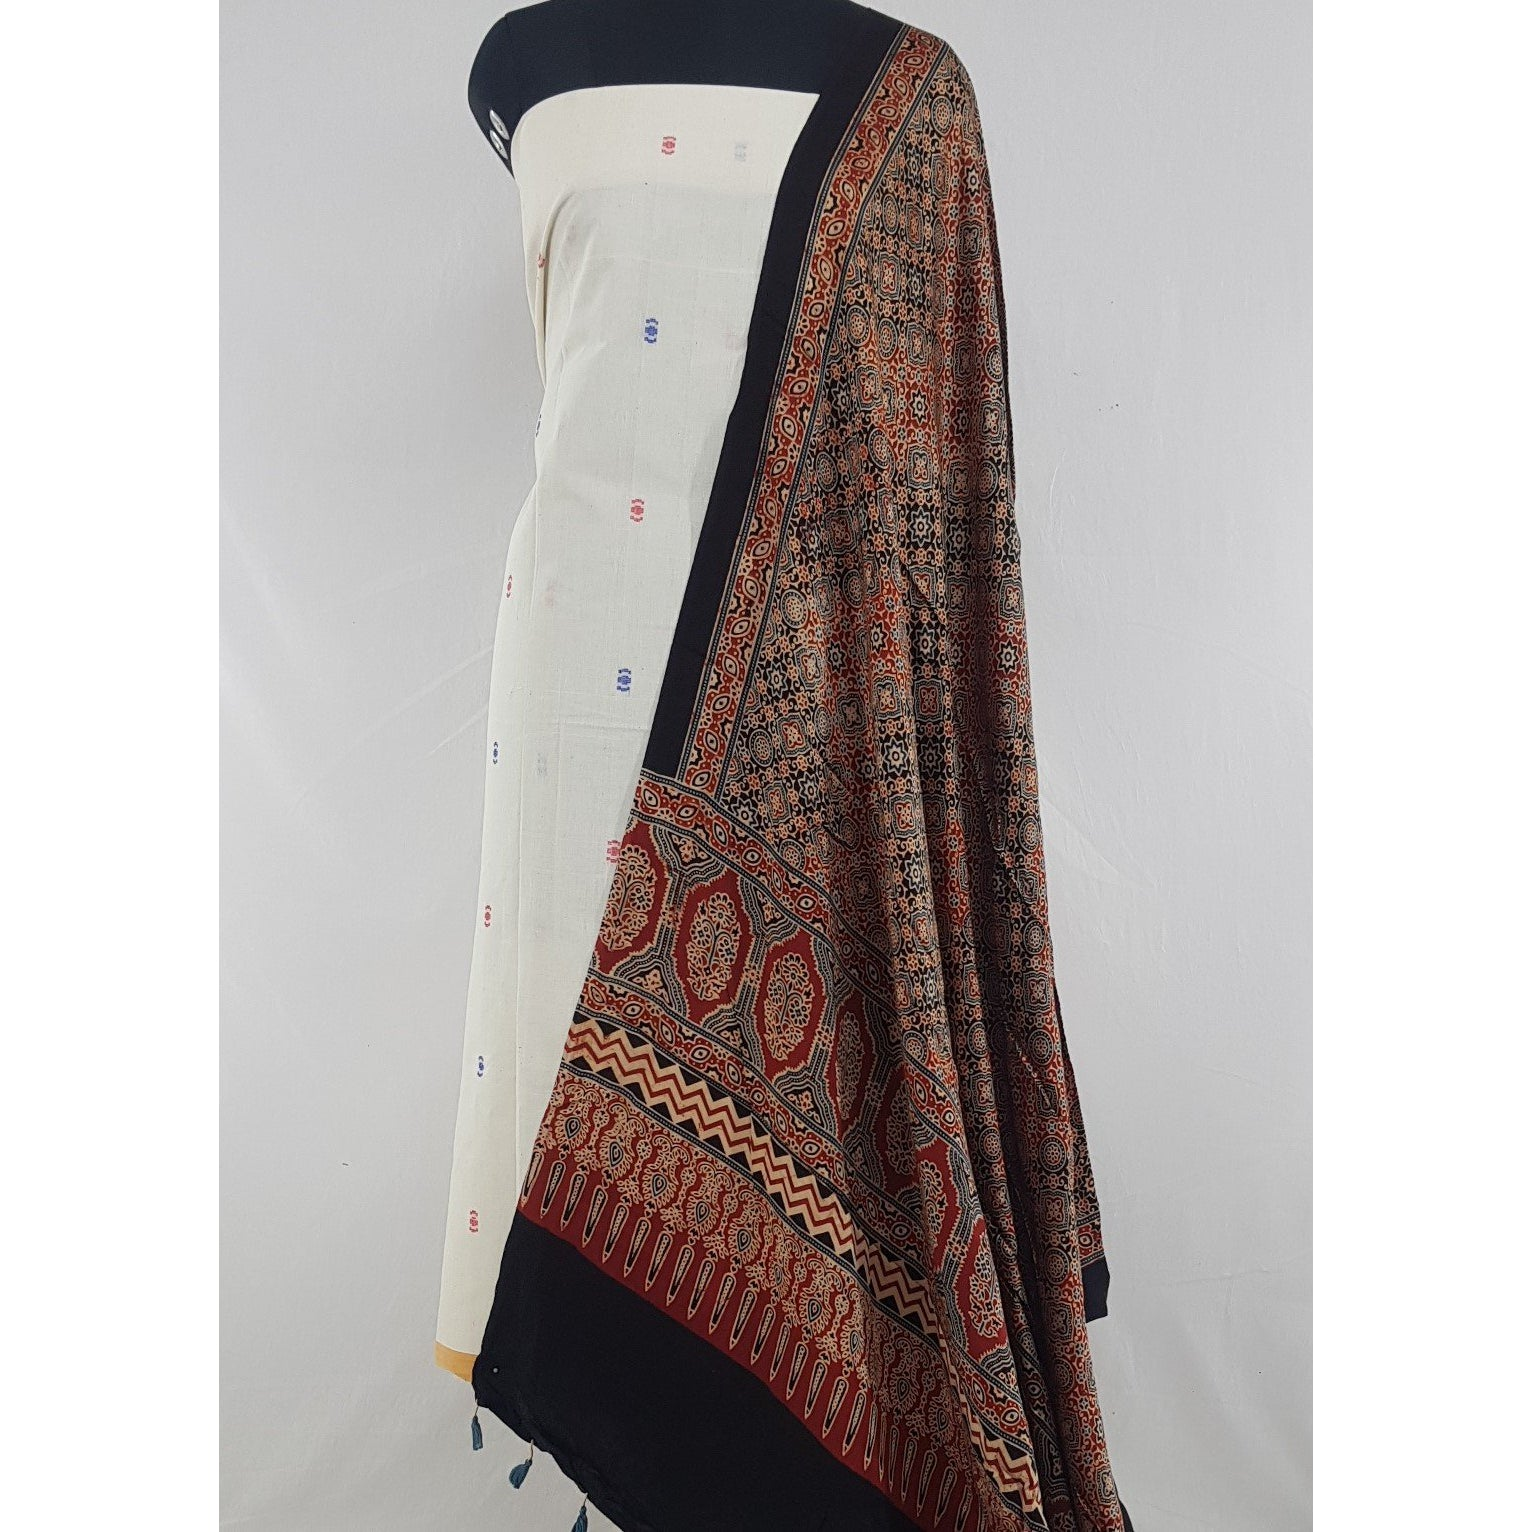 Hand printed natural dyed Ajrakh Modal Silk dupatta with handmade yarn cotton butta  top / Salwar Set - Vinshika